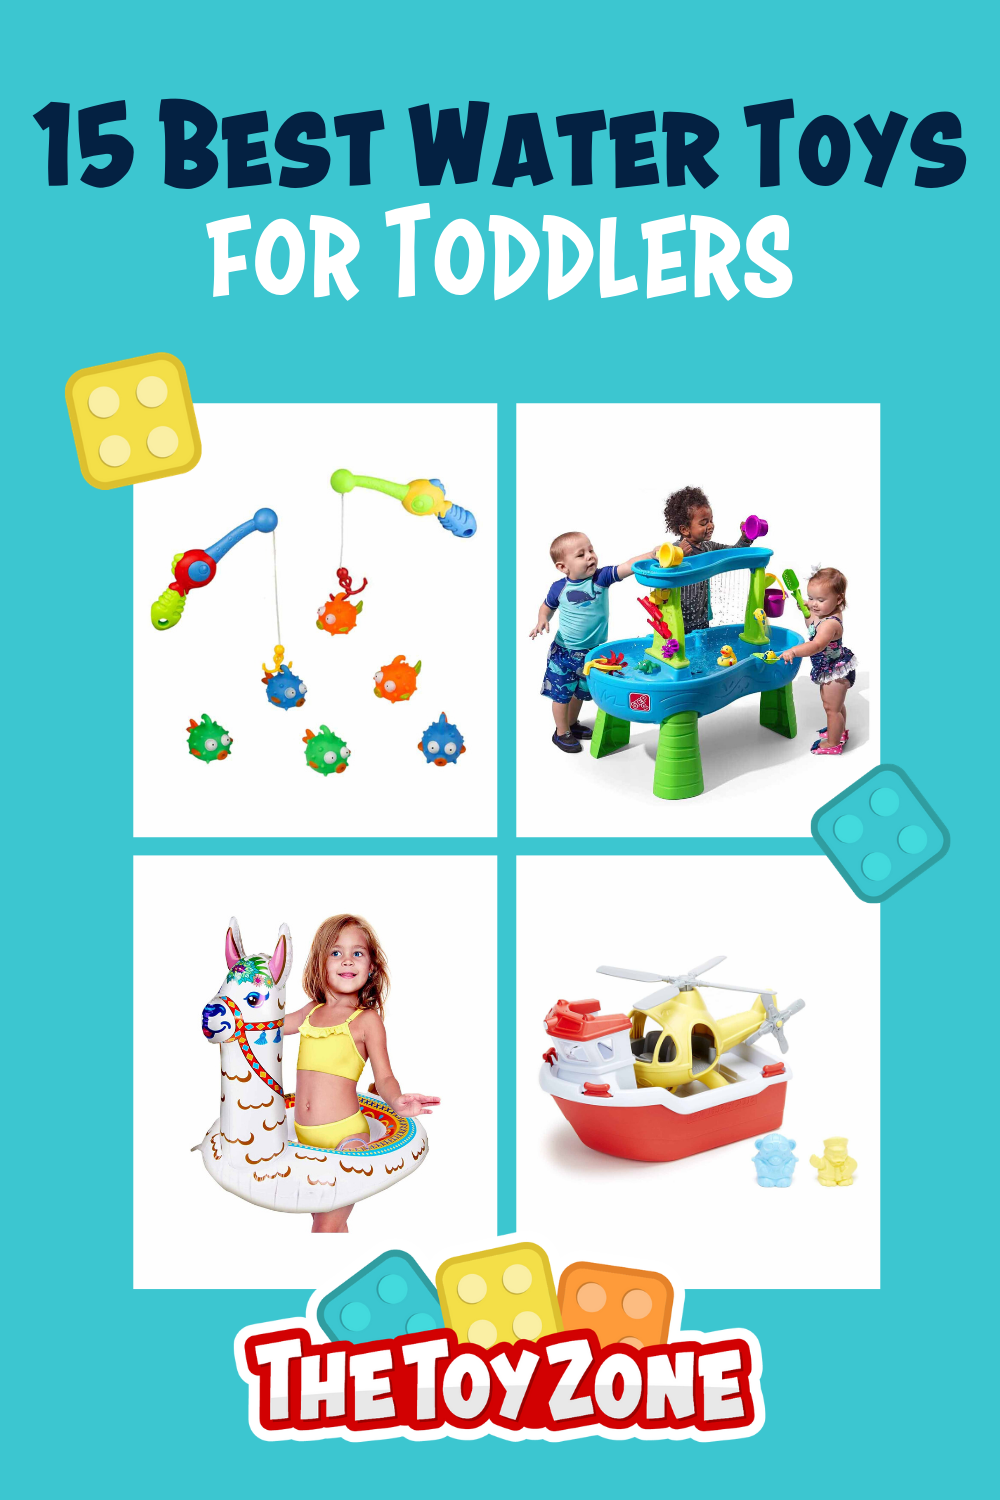 15 Best Water Toys for Toddlers 2020 - TheToyZone in 2020 ...